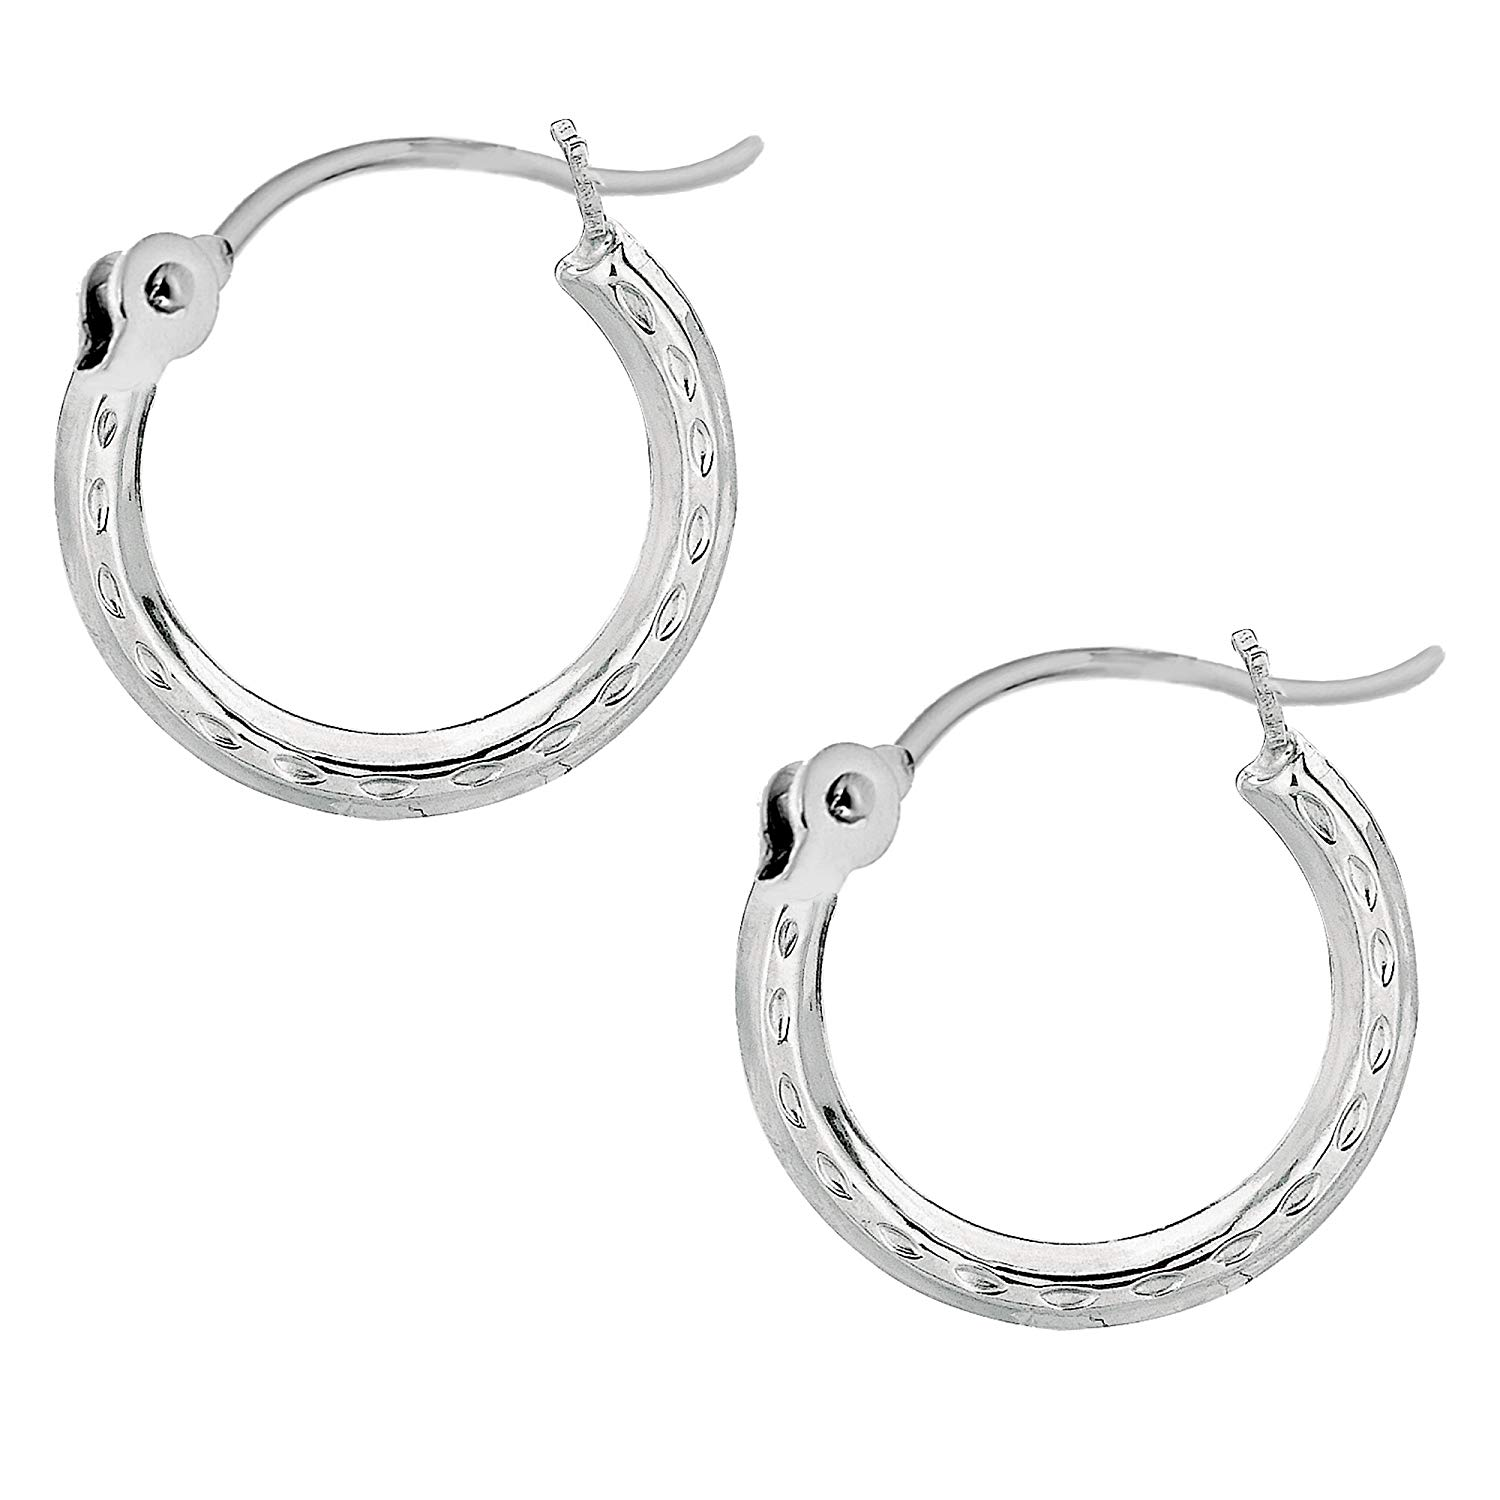 Cheap Baby Earrings Hoops find Baby Earrings Hoops deals on line at